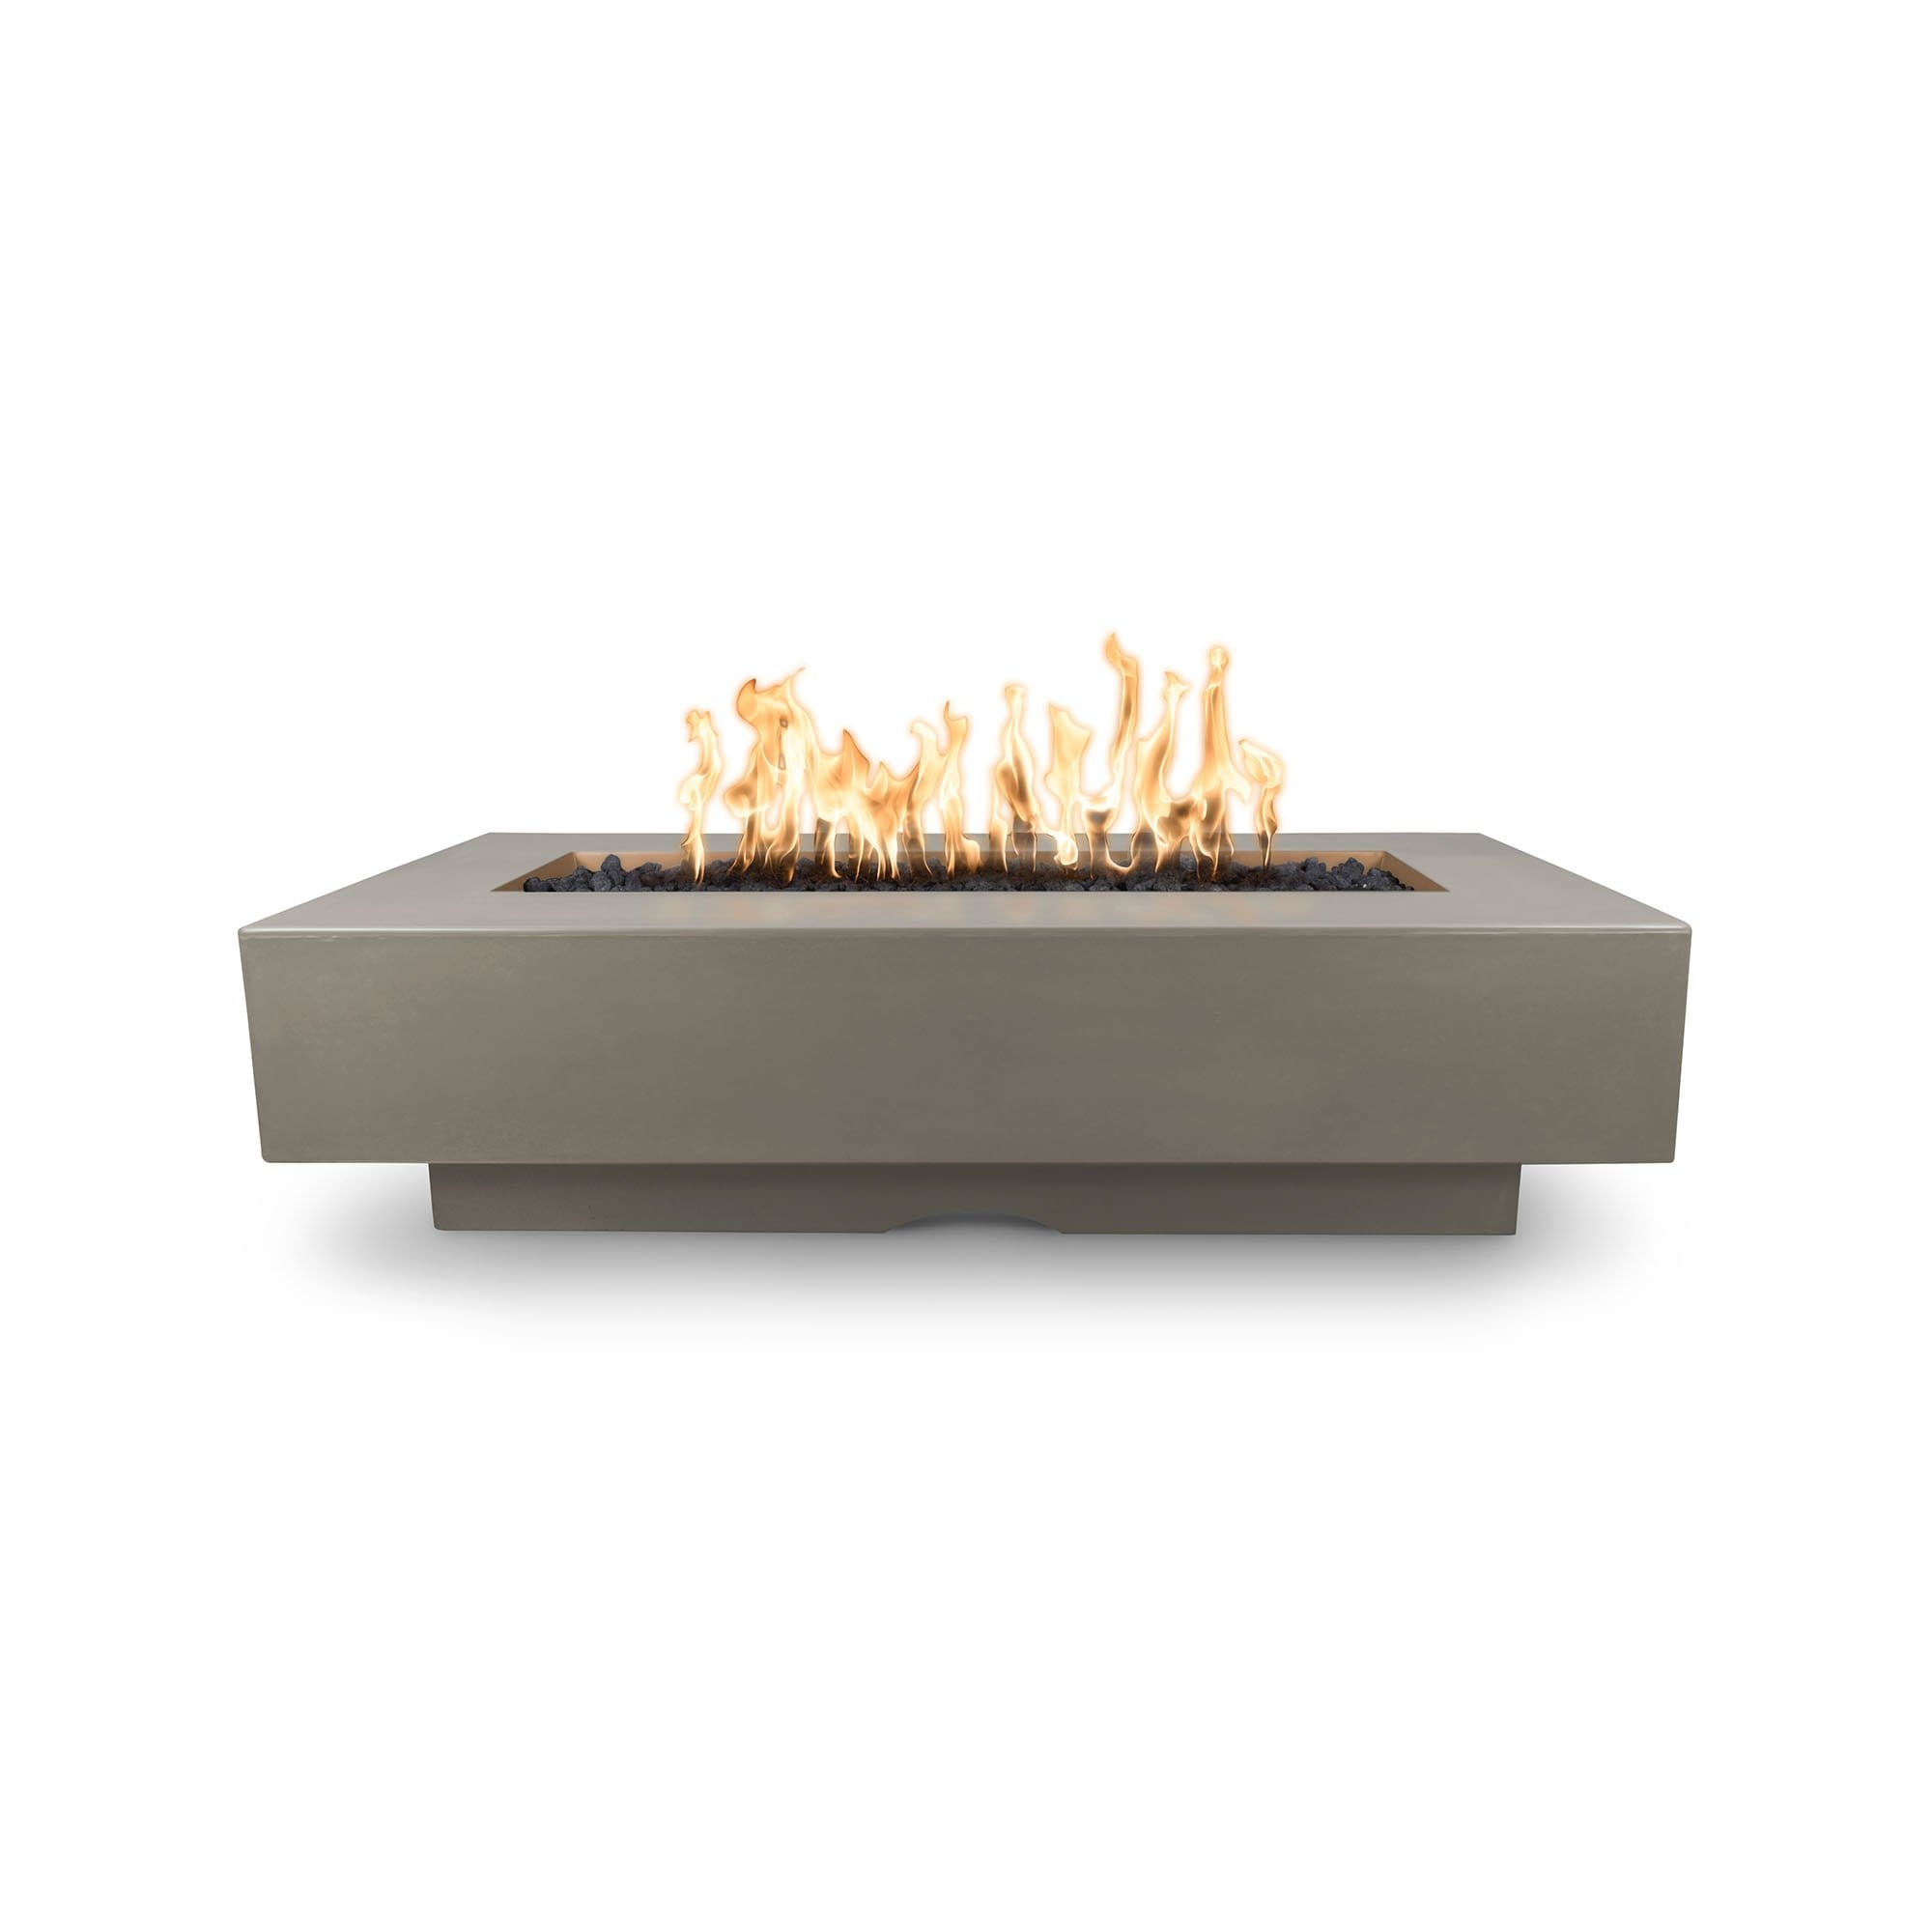 "The Outdoor Plus Del Mar Concrete Fire Pit 84"" Model OPT-DEL8428 Fire Pit The Outdoor Plus Ash Electronic Ignition Natural Gas"